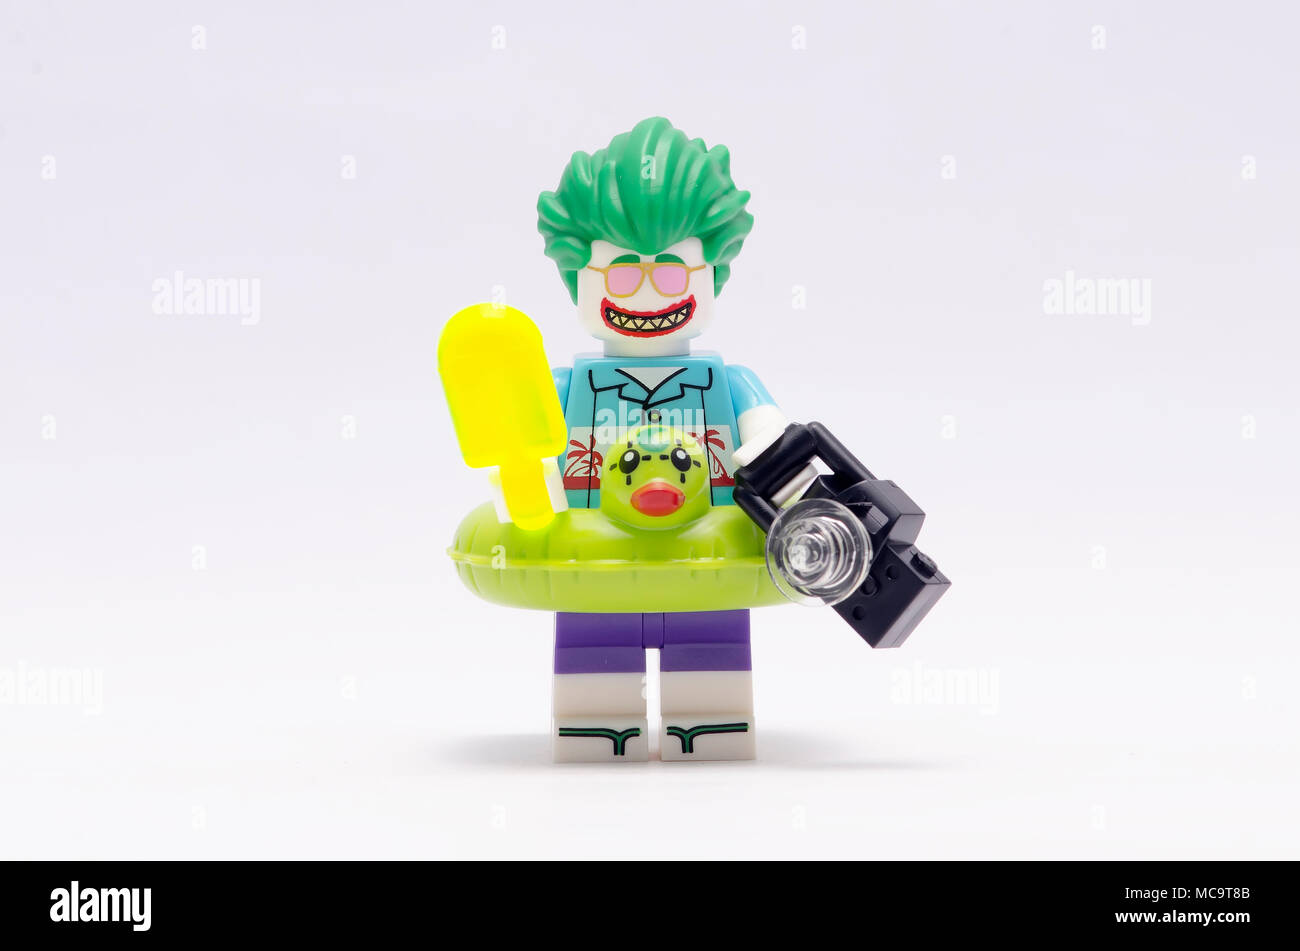 MALAYSIA  jan 21  2018  batman and joker holding ice cream  Lego     MALAYSIA  jan 21  2018  batman and joker holding ice cream  Lego  minifigures are manufactured by The Lego Group